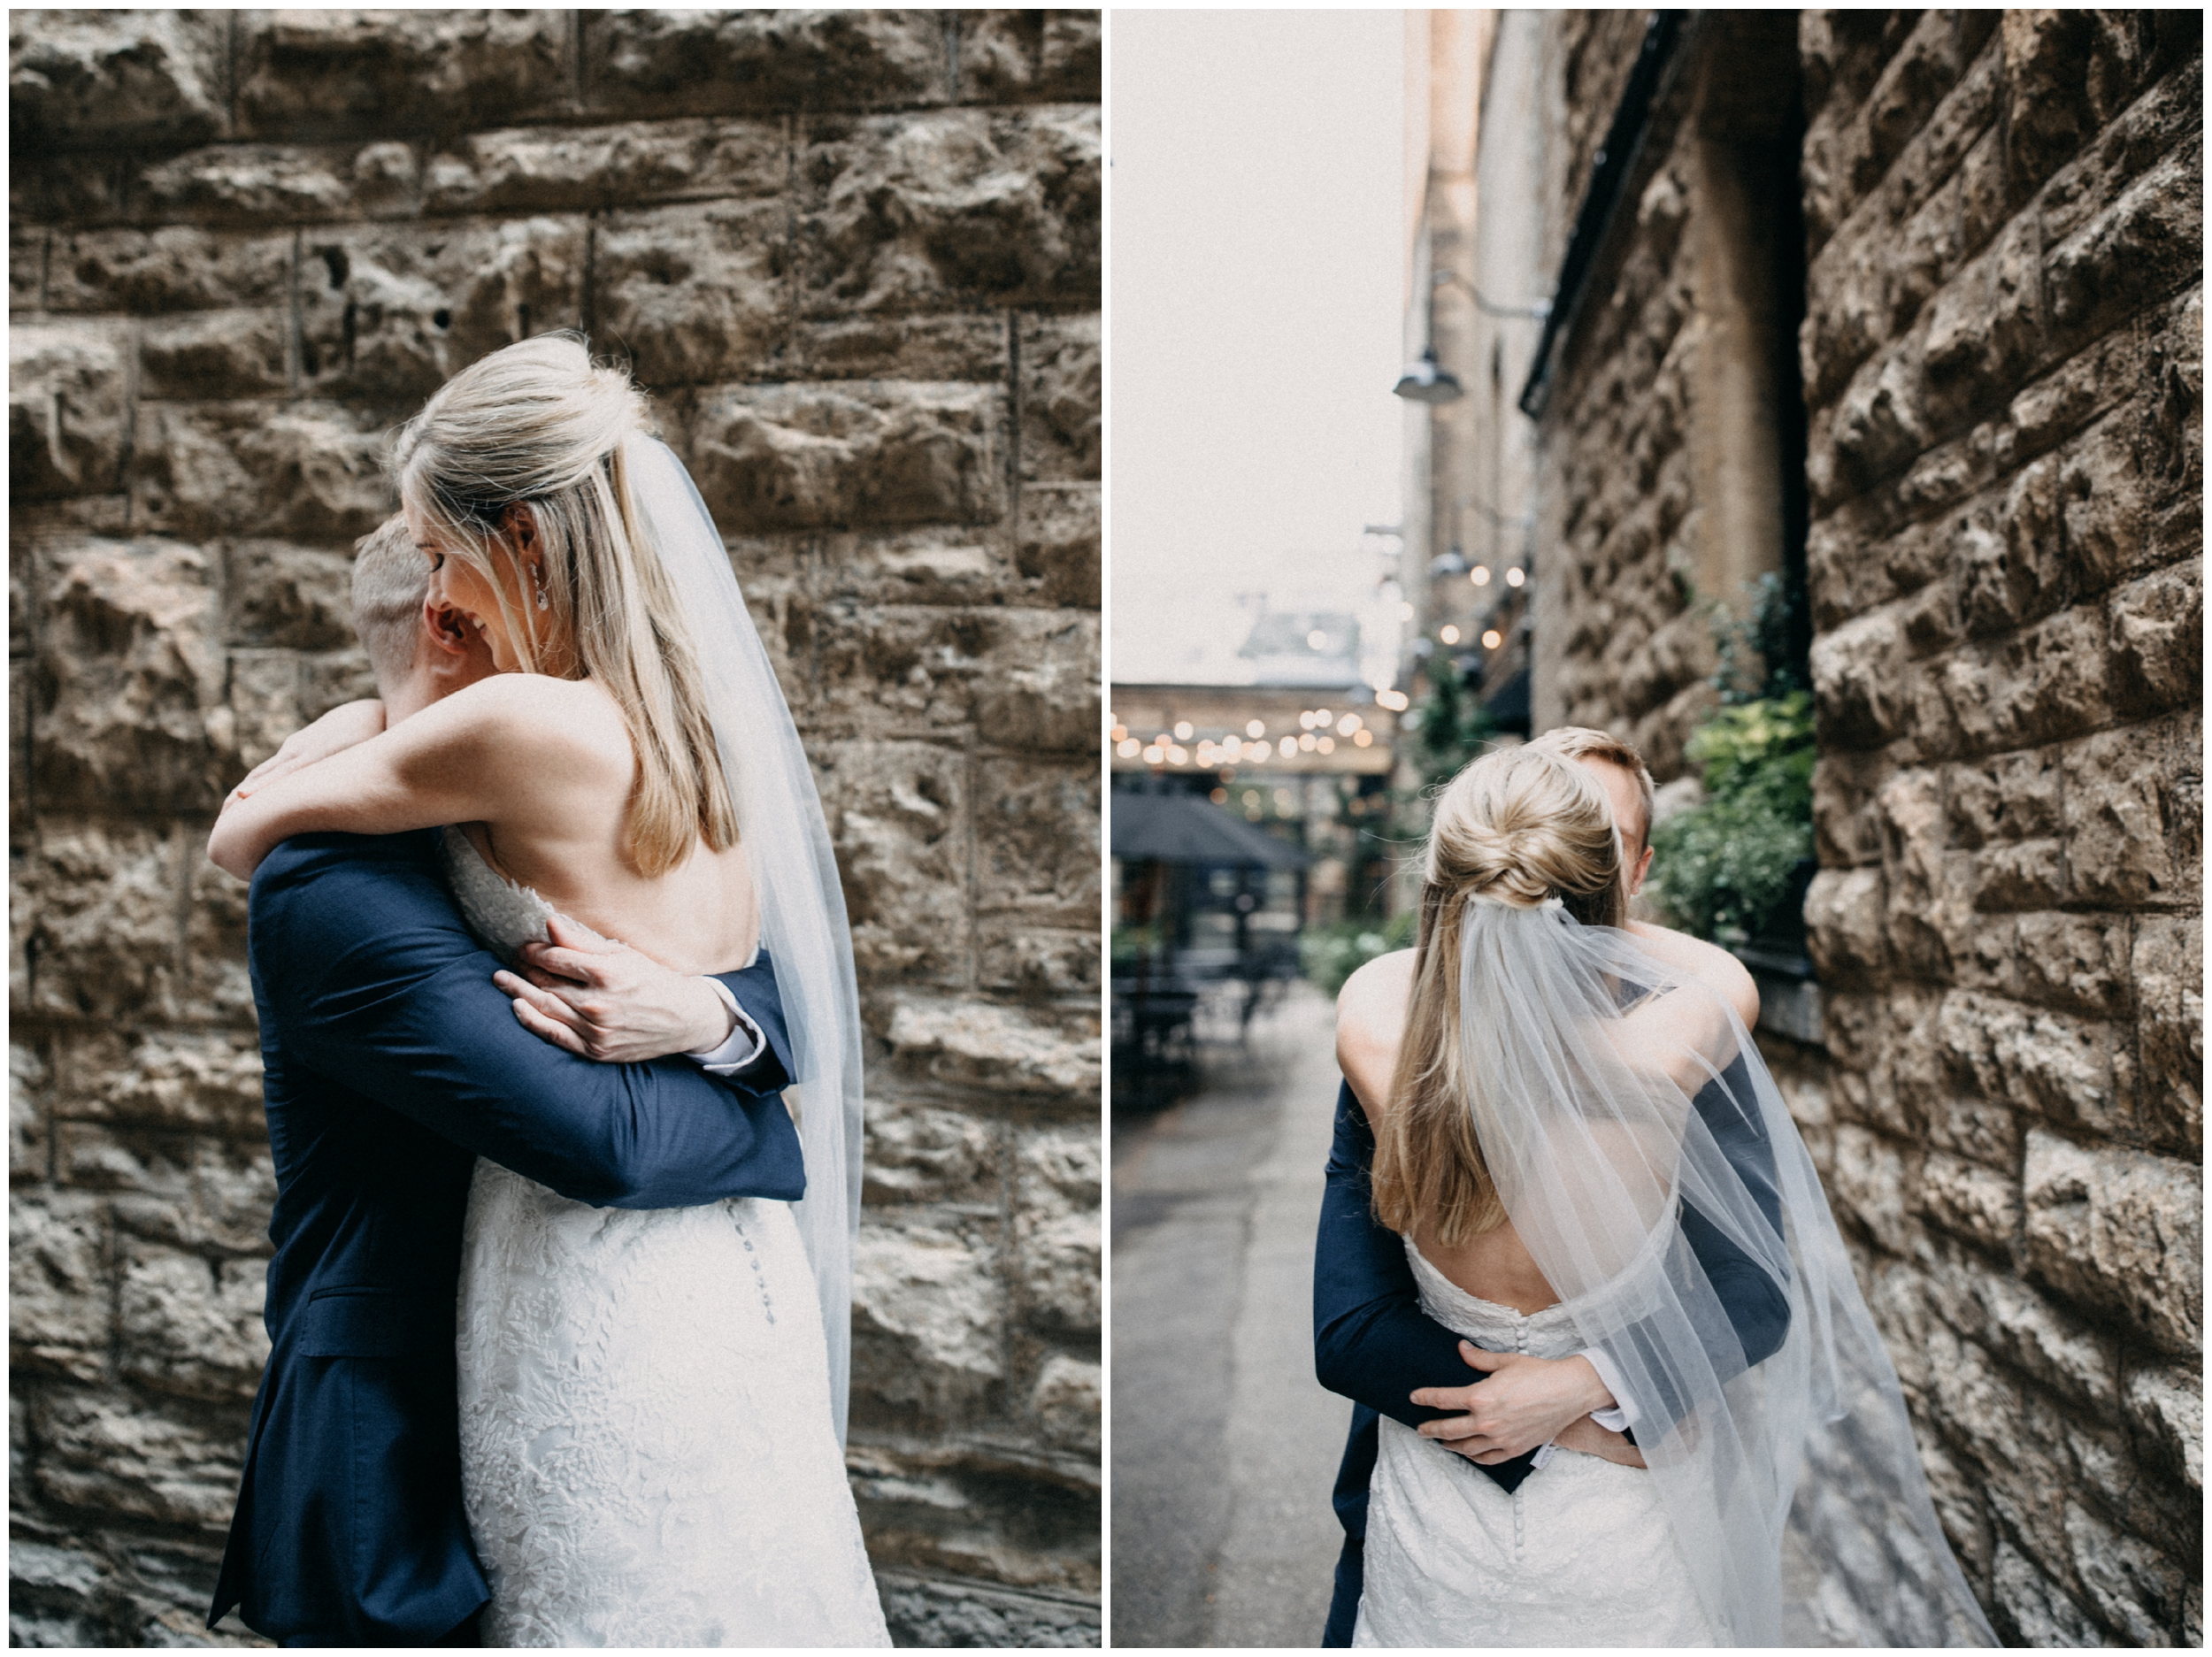 Wedding day first look at the Hewing Hotel in Minneapolis Minnesota